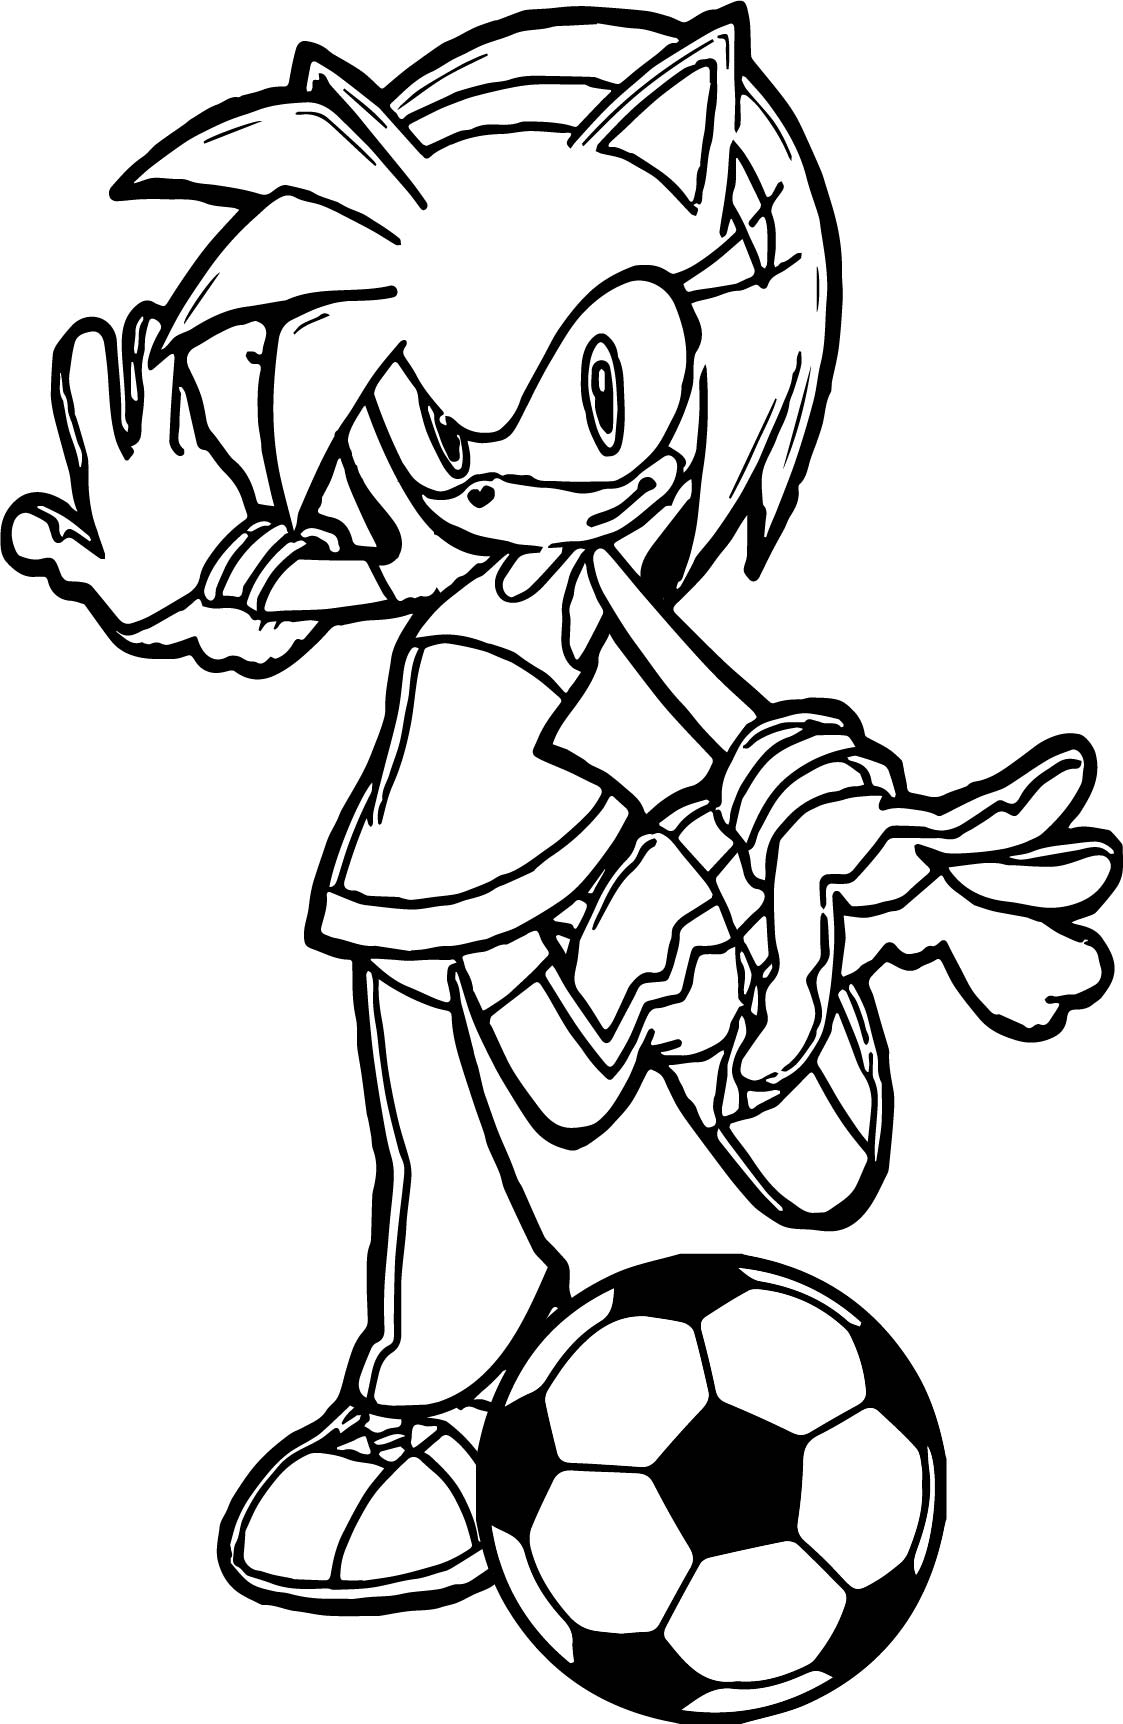 Amy Rose Soccer Ball Kick Coloring Page Wecoloringpage